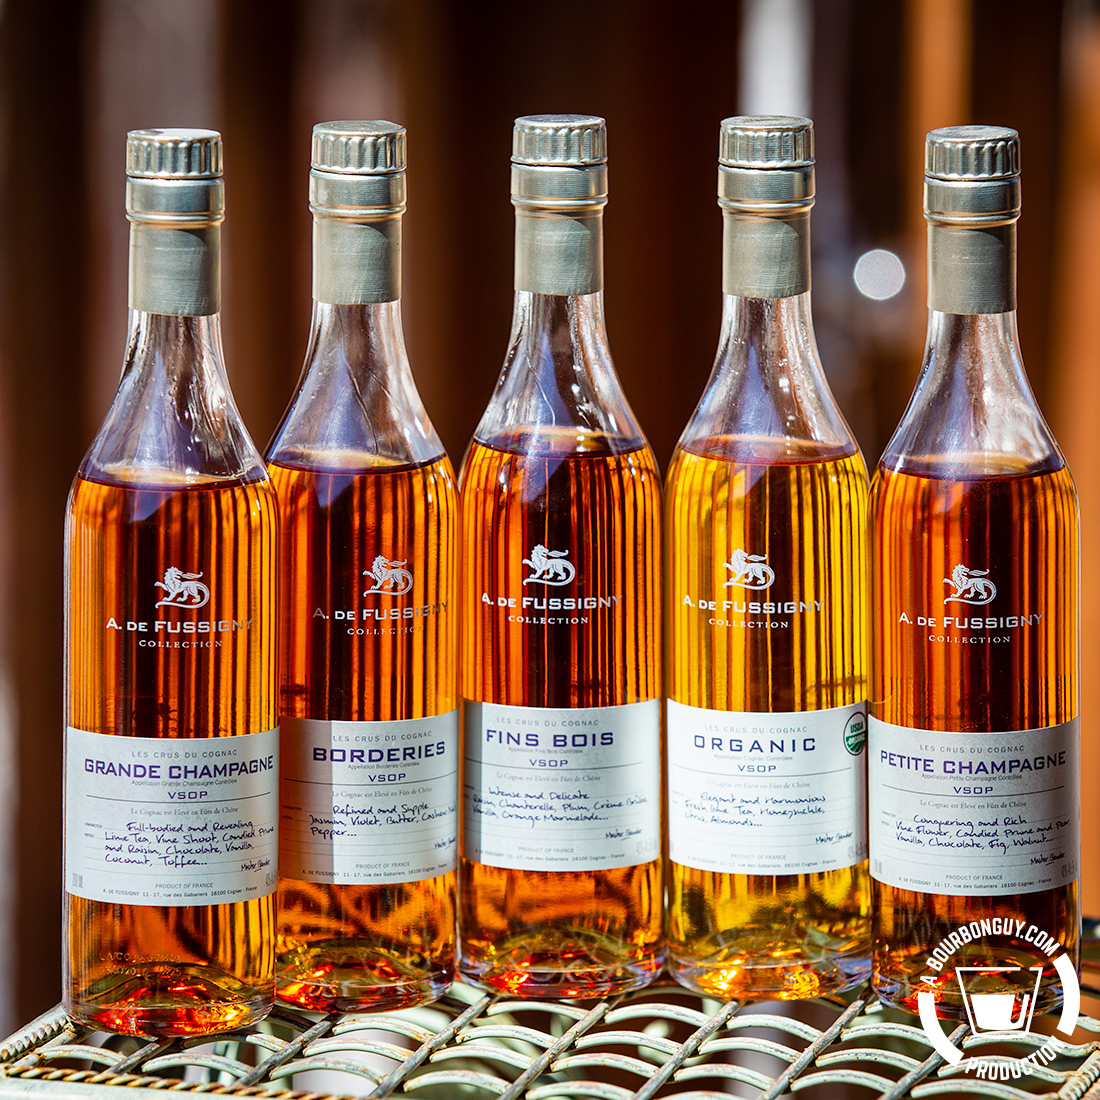 IMAGE: five cognacs from the A. de Fussigny Cognac Collection. One from four different cognac regions and one organic blend